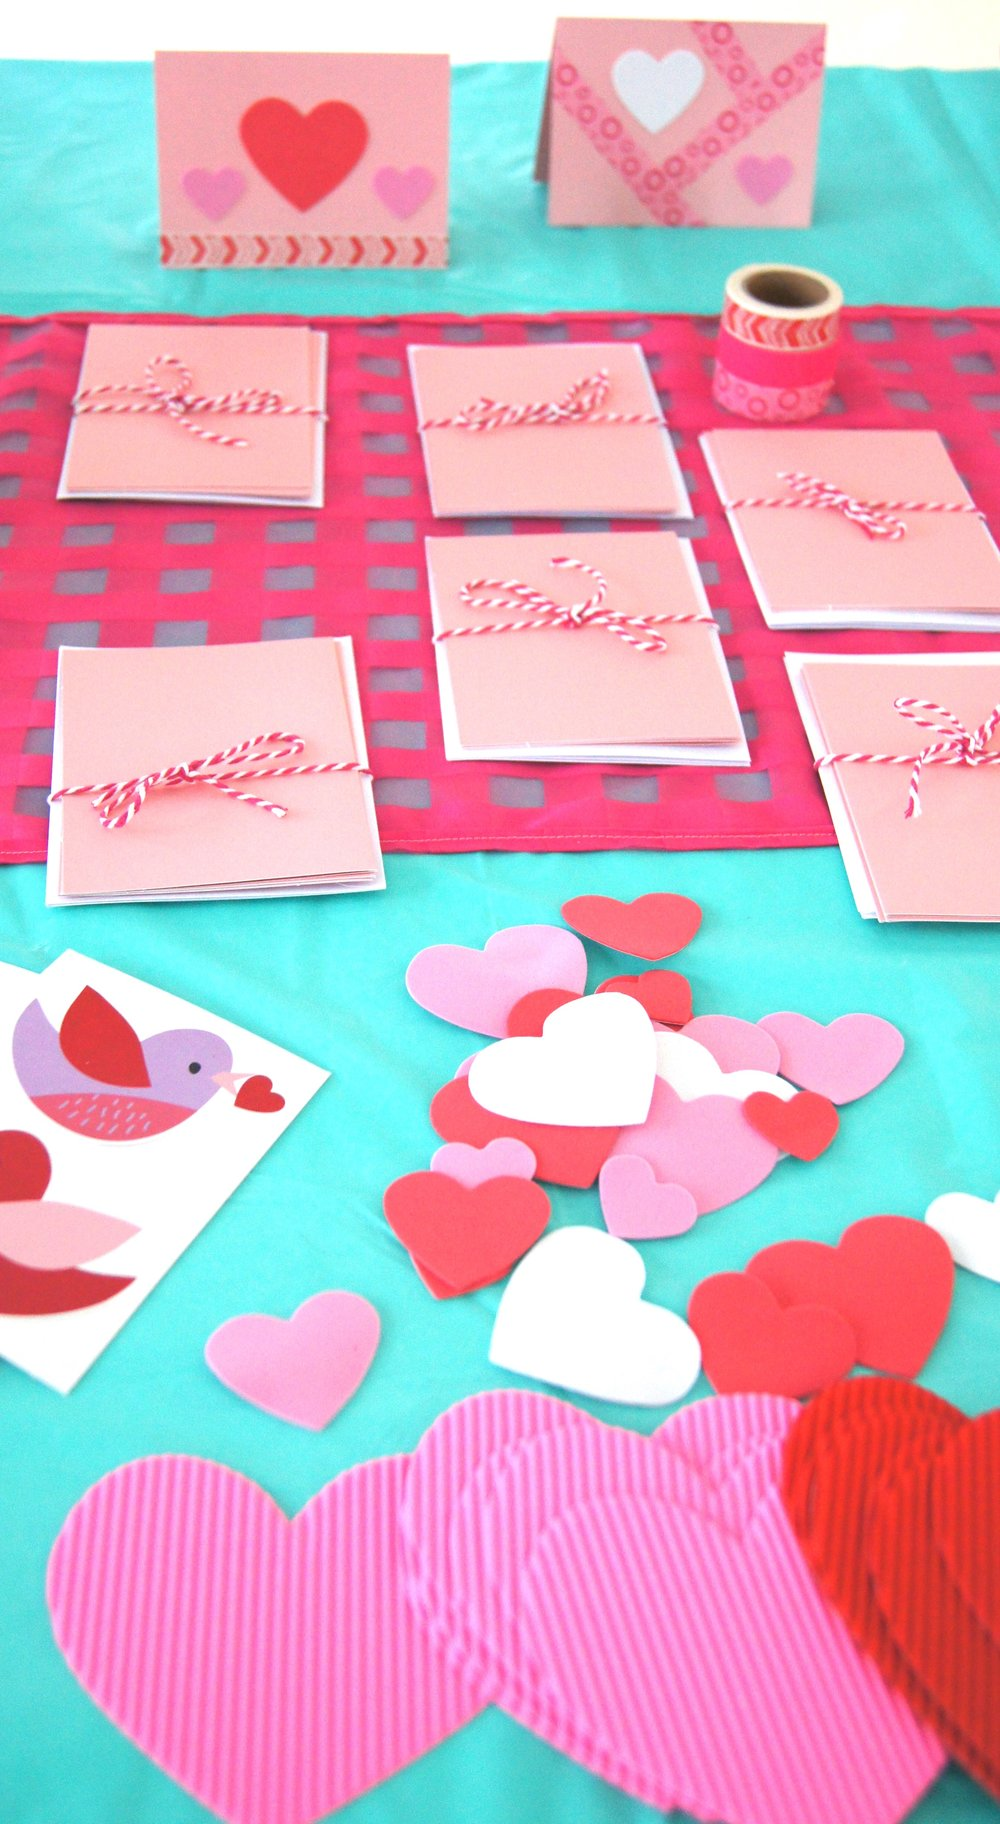 Make your own Valentine cards for friends of for kids in the hospital using blank cards, washi tape, and foam heart stickers.